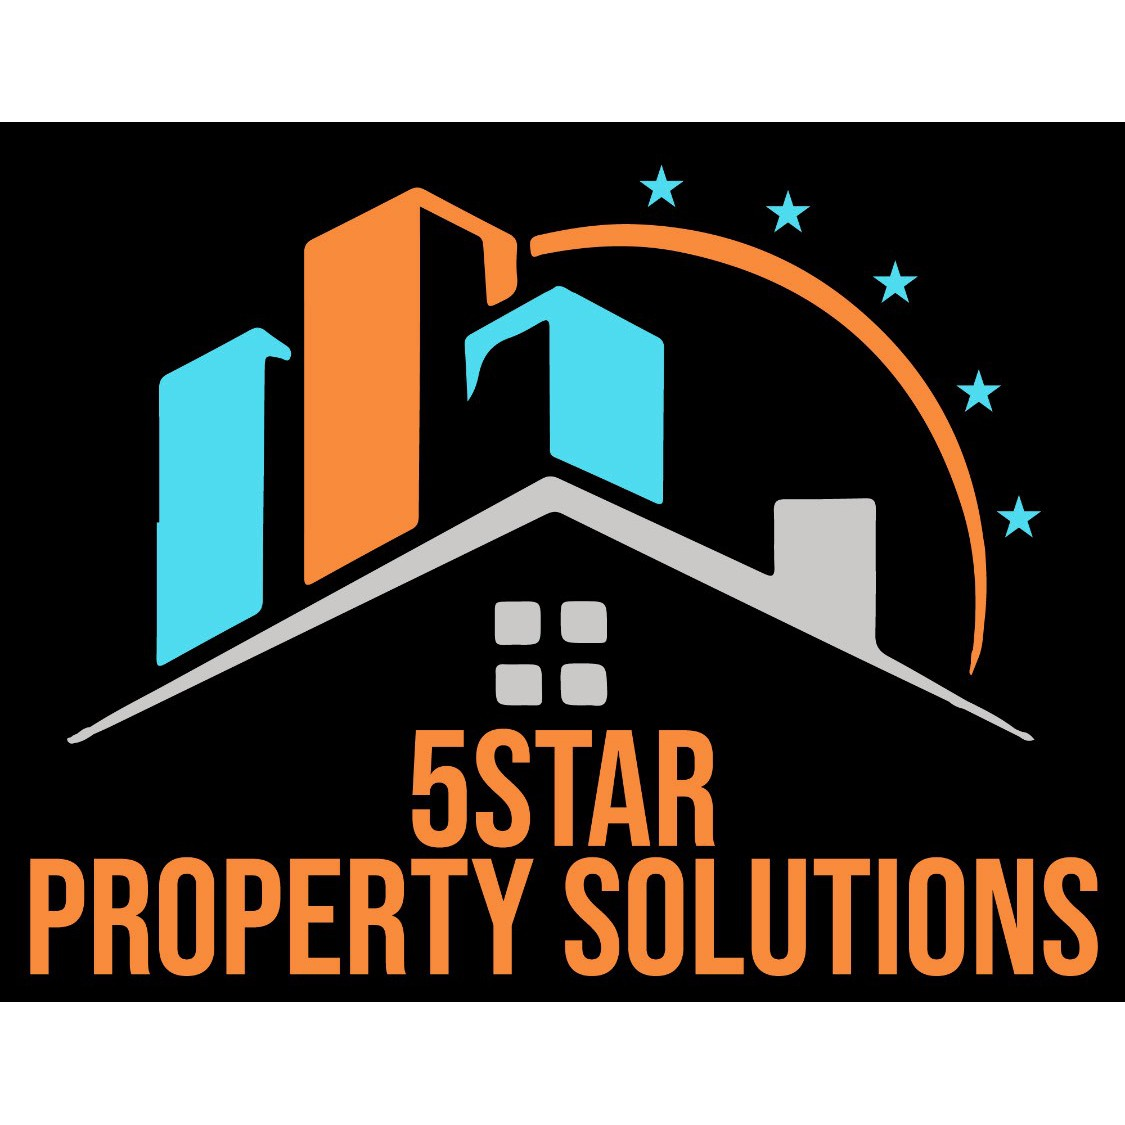 5Star Property Solutions